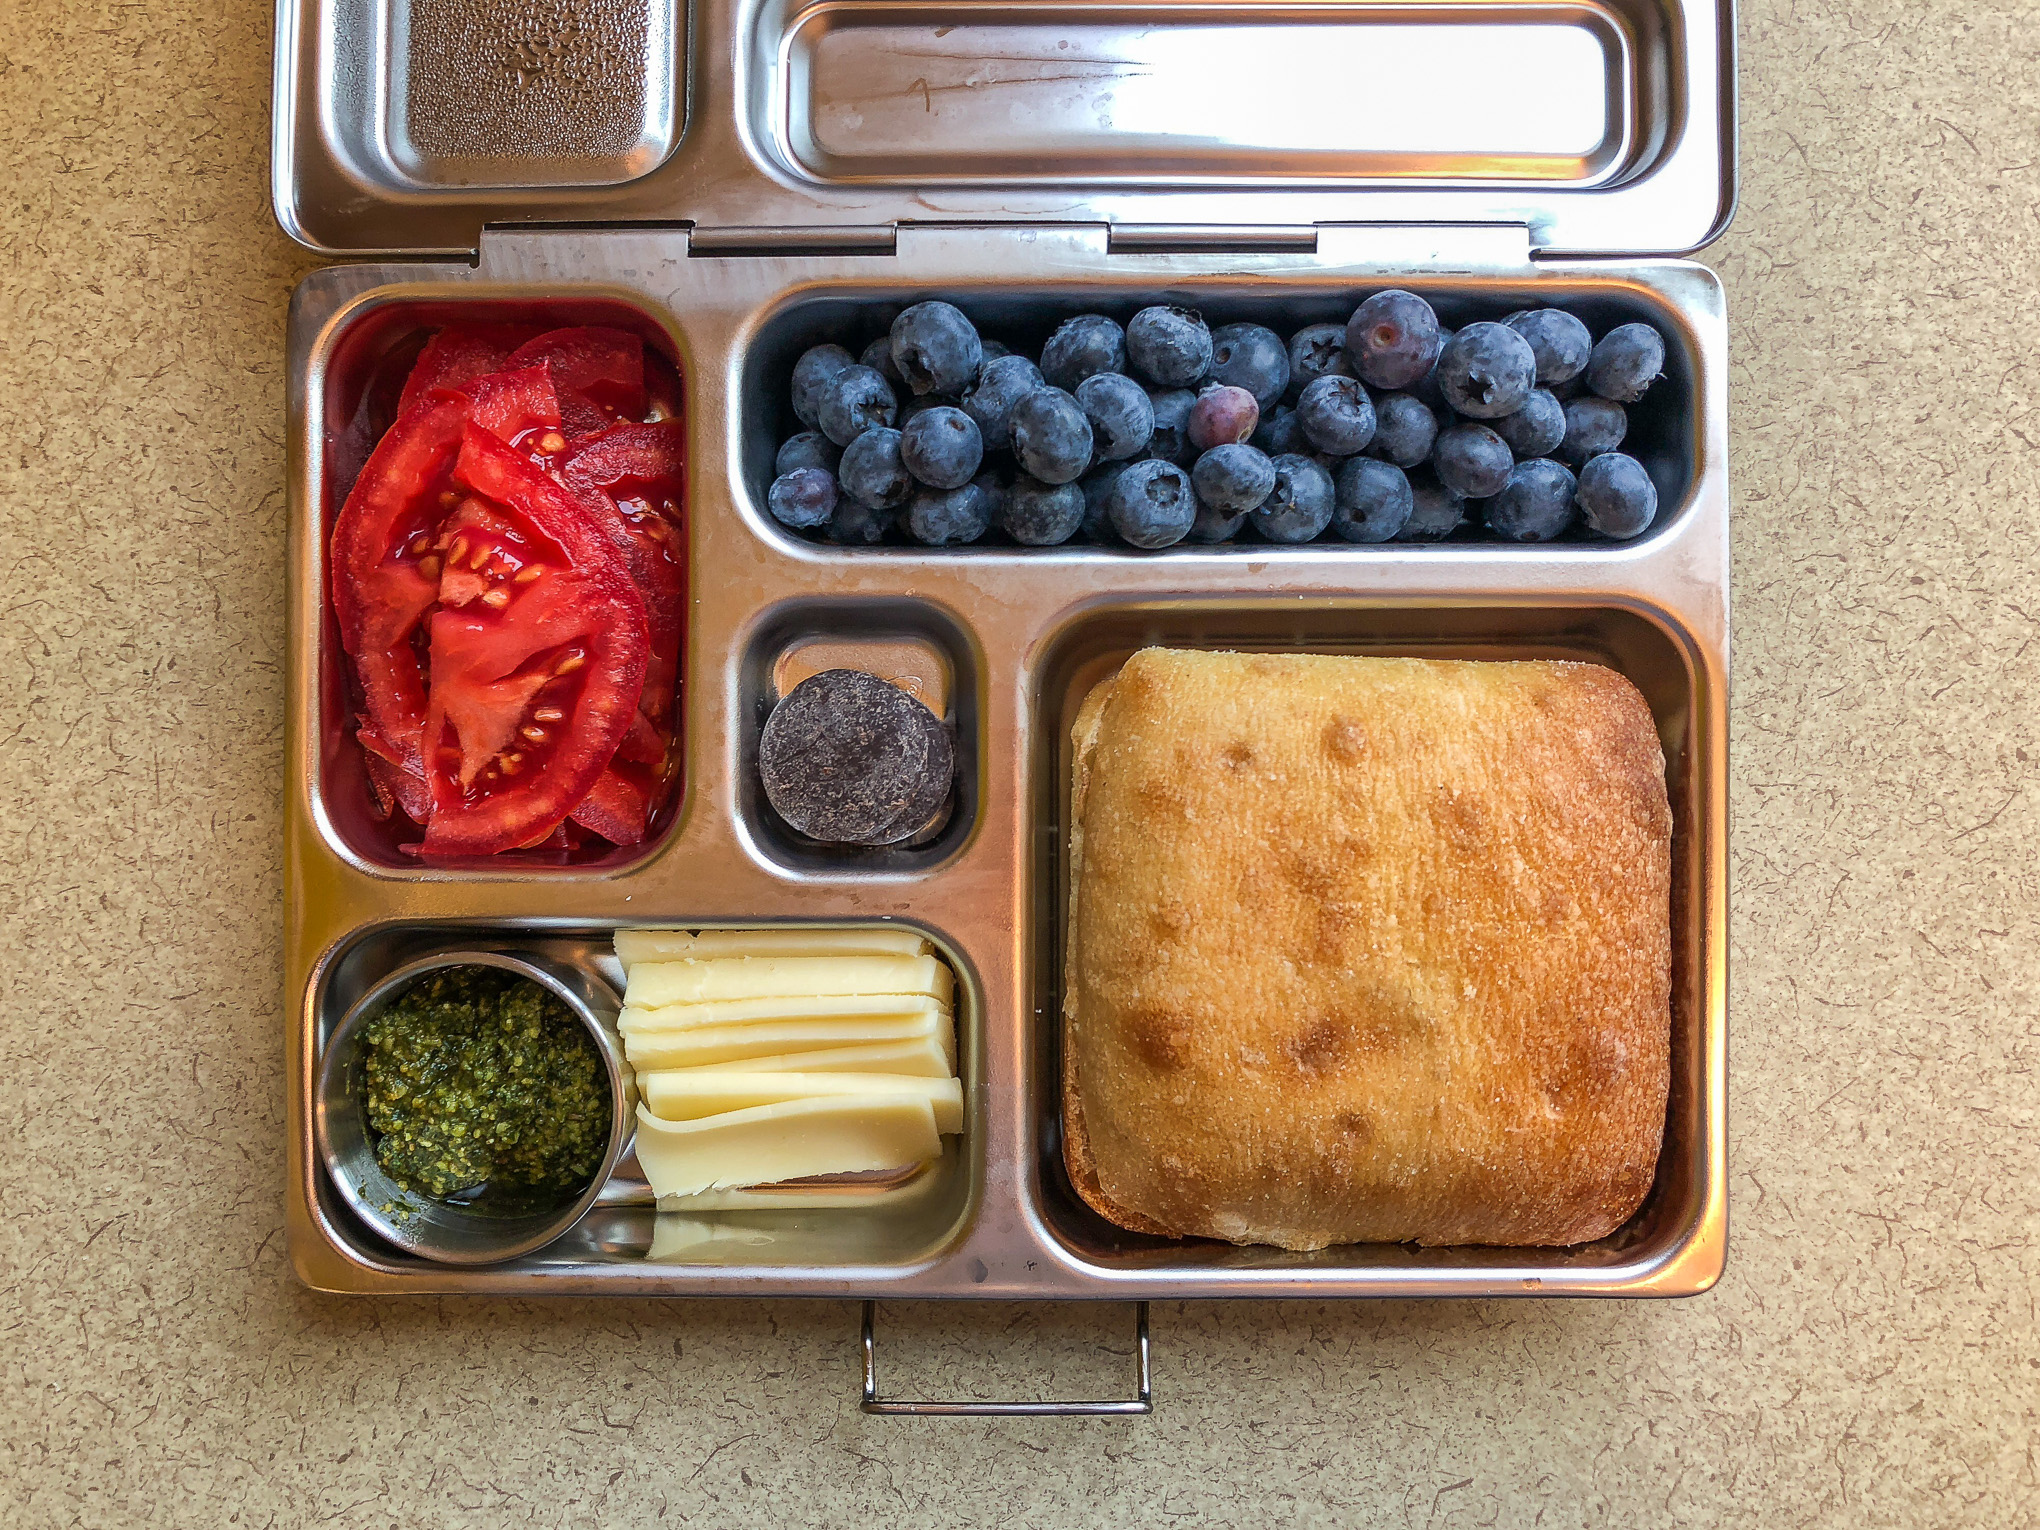 "Bento field containing vegetables and fruit ""class ="" wp-image-13466 ""data-jpibfi-post-excerpt ="" ""data-jpibfi-post-url ="" http://www.veggirlrd.com / 12 -bento-lunch-for-fall / ""data-jpibfi-post-title ="" 12 lunches bento of autumn ""data-jpibfi-src ="" http://www.veggirlrd.com/wp- content material / uploads / 2018/11 / Bento-Lunches-Sept-2018-2.jpg ""/>  Tomato slicesBleuberriesTart of Chiabatta (which I full of pesto, tomatoes and mozzarella to make a sandwich) Mid-skim mozzarella cheesePesto home made Darkish chocolate  <img src="